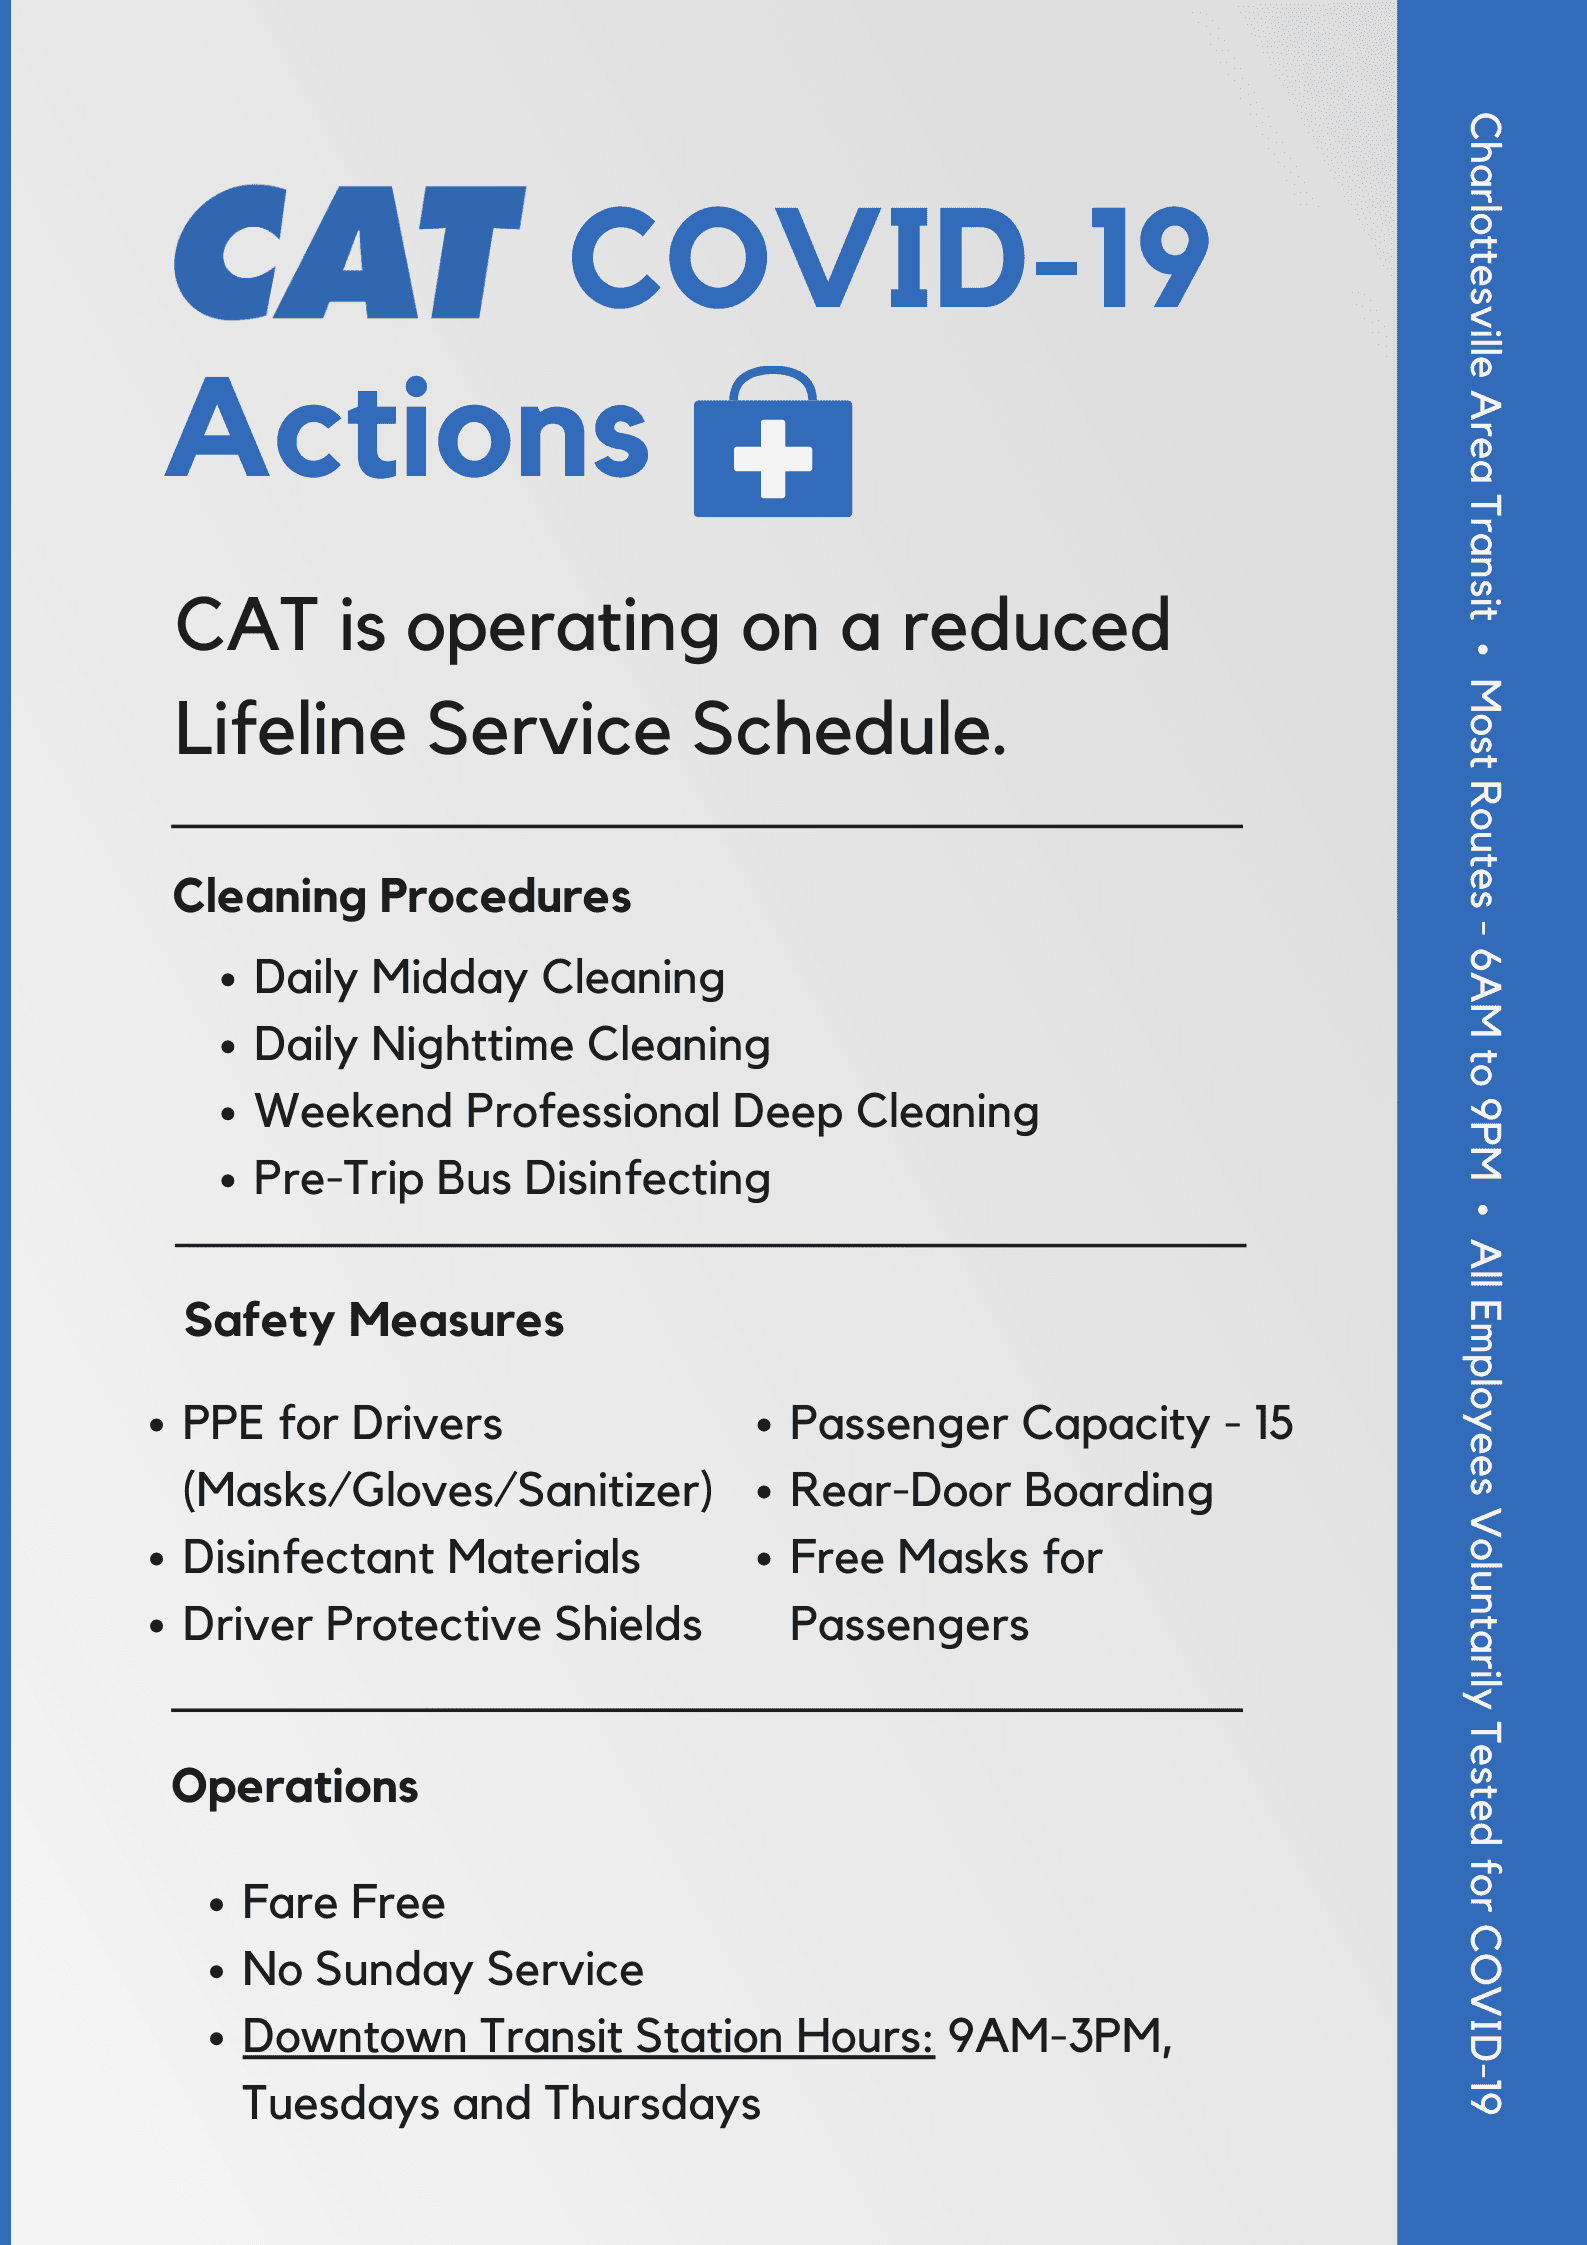 CAT COVID-19 Actions Poster